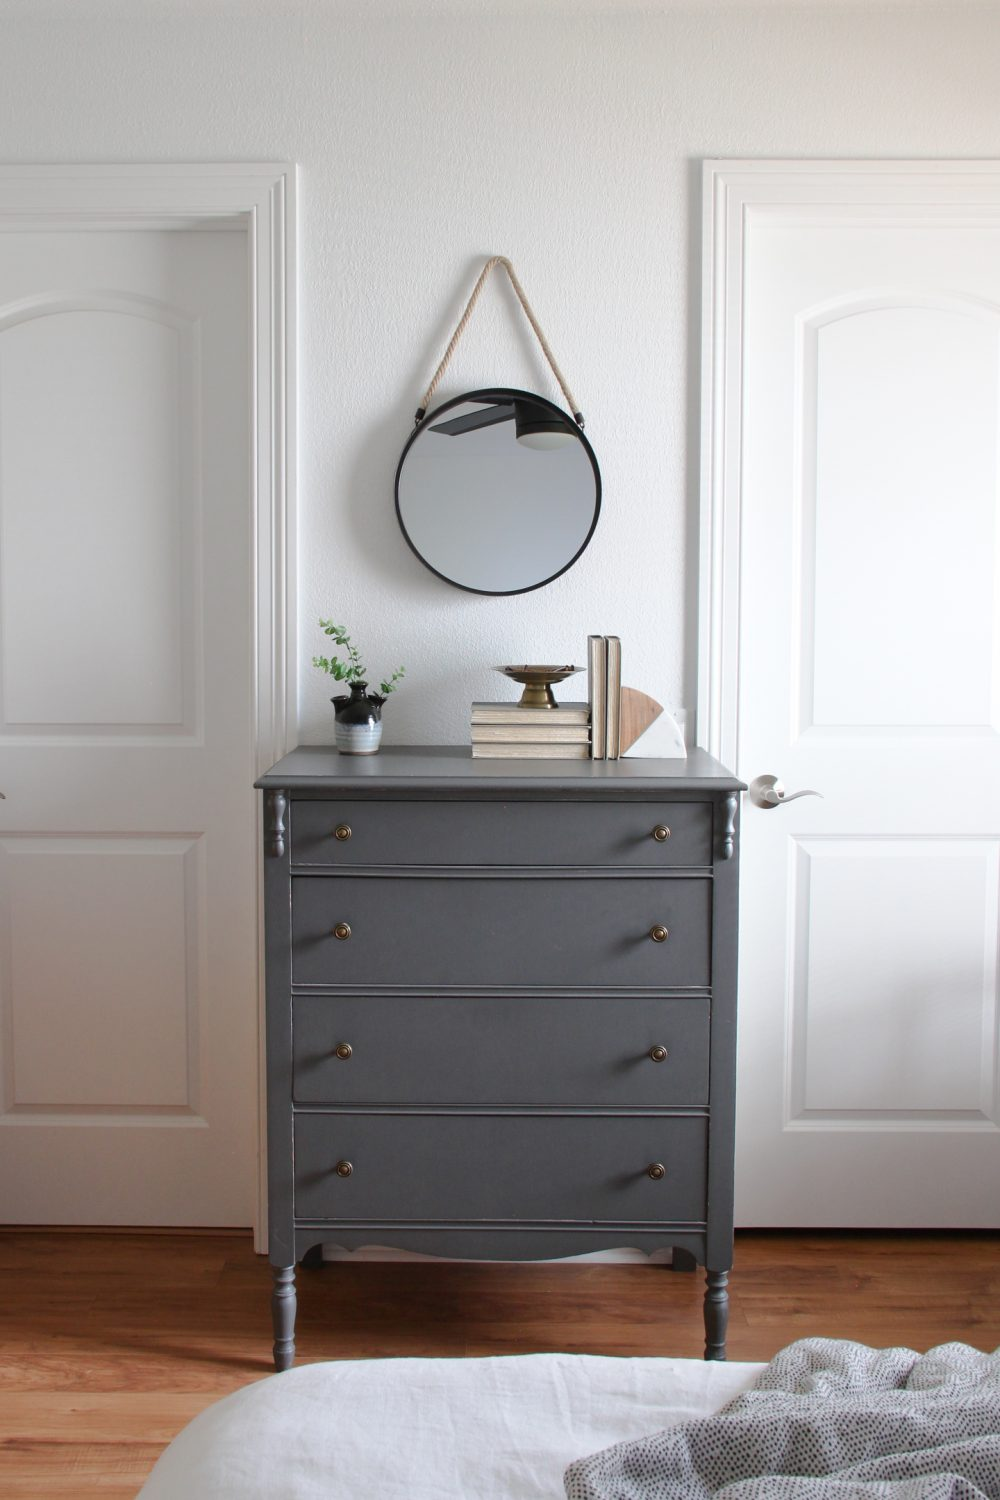 Vintage dresser with hanging mirror in master bedroom | Melissa Lynch | melissalynch.com